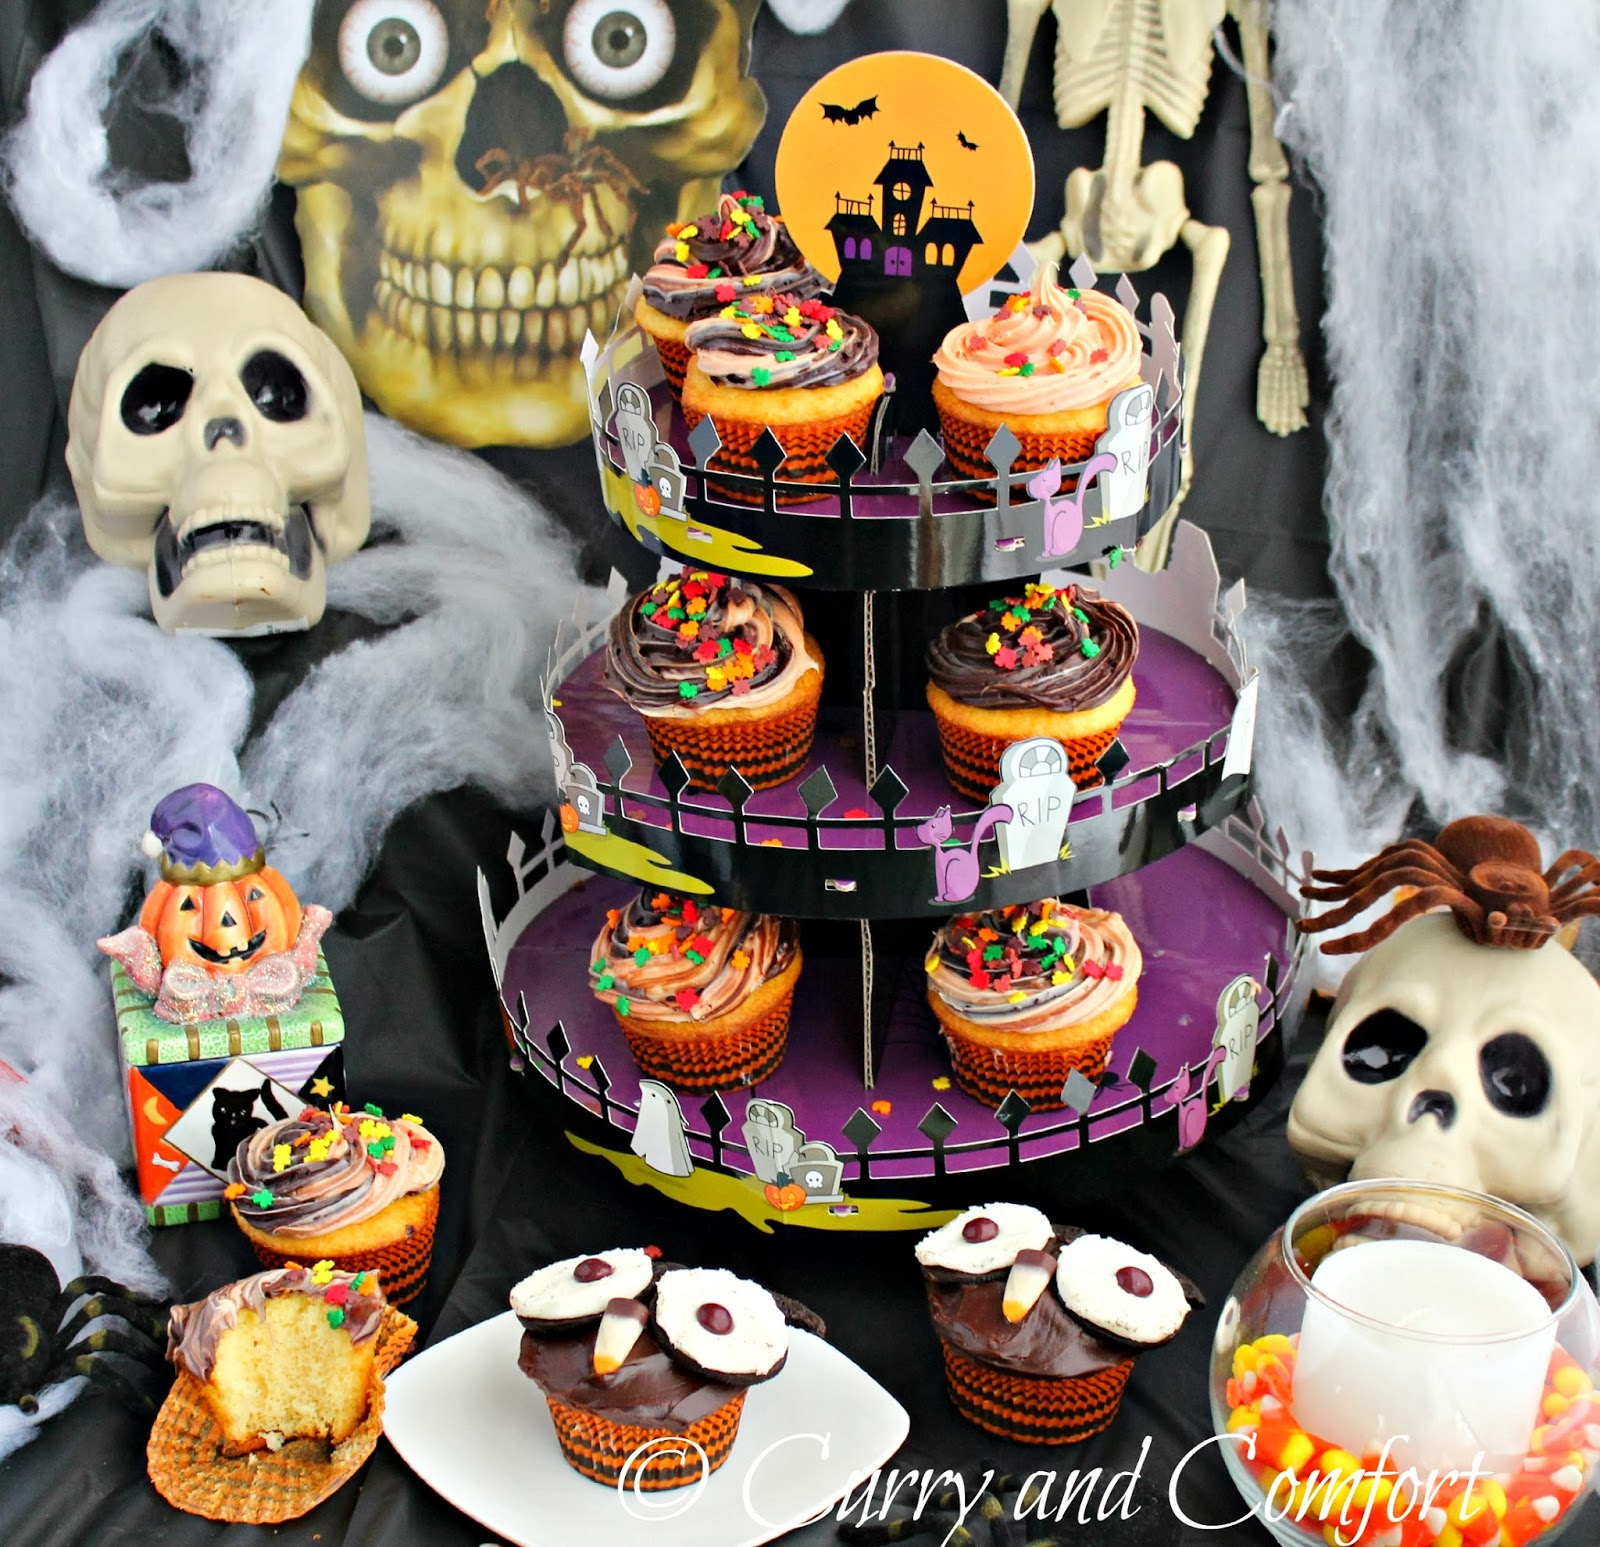 sweet creations by good cook asked me to make some fun decorated cupcakes for a halloween themed party i had so much fun decorating the owl cupcake and the